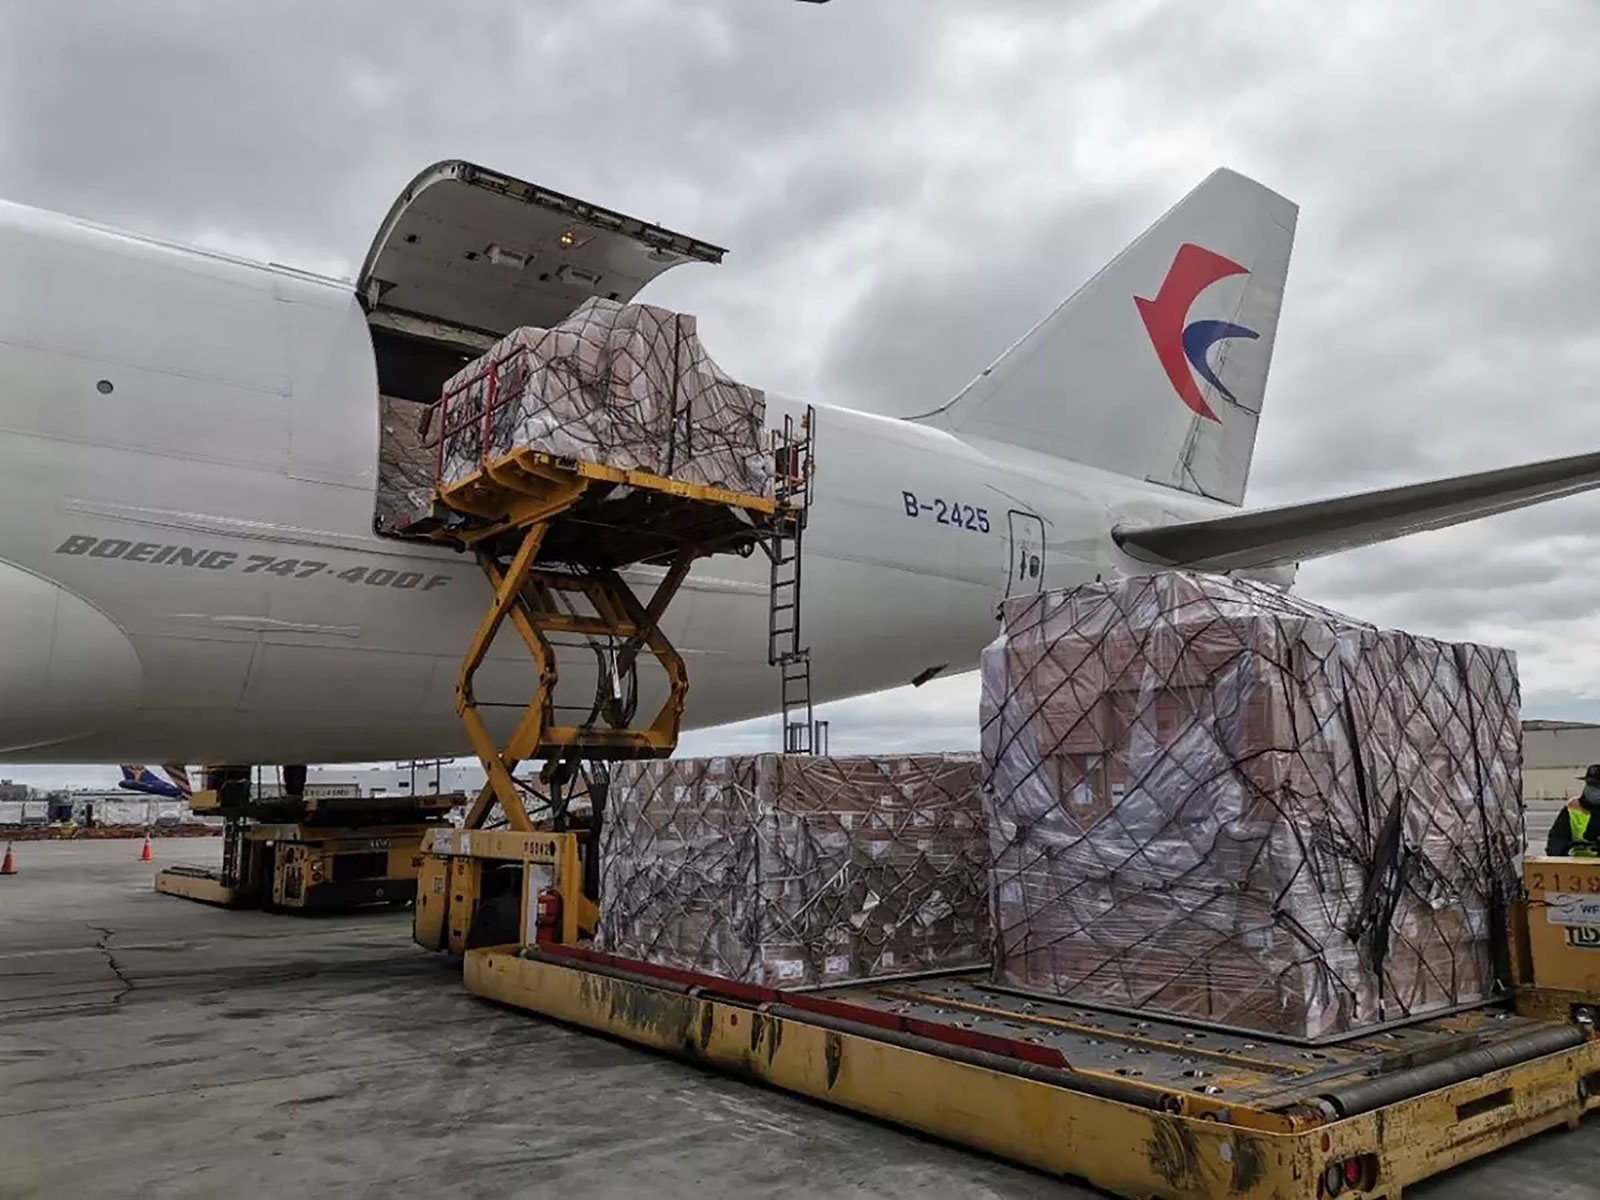 Billionaire co-founder of Alibaba Joe Tsai and his wife Clara Wu Tsai have donated 2.6 million masks, 170,000 goggles and 2,000 ventilators to New York. The donations came in two separate shipments. One arrived at Newark on April 2 and has already been distributed.